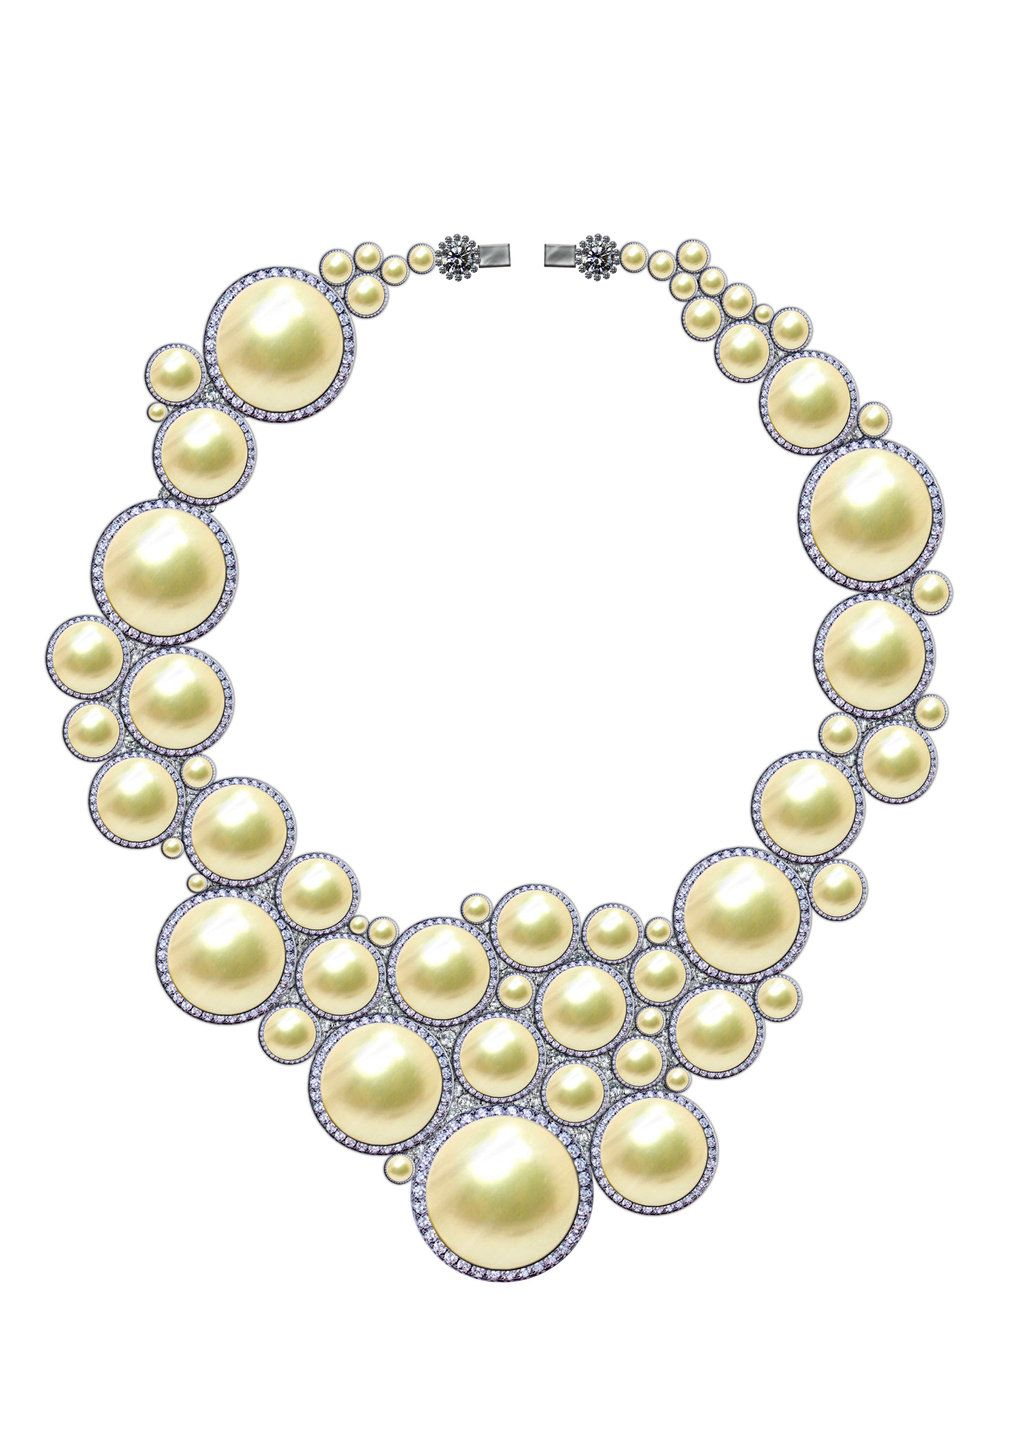 Look - Necklace pearl sketch photo video